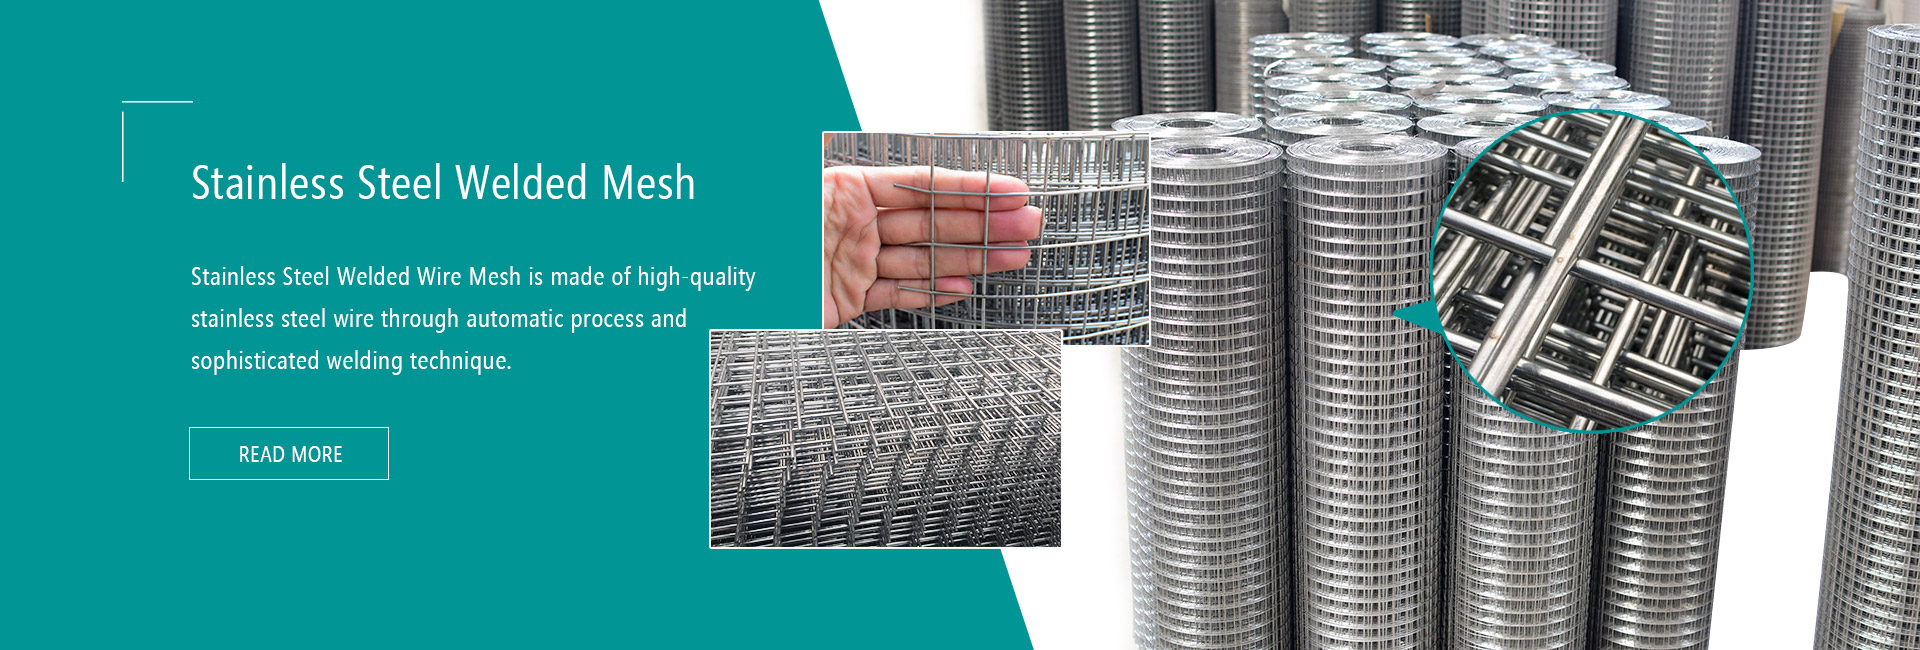 Stainless-Steel-Welded-Mesh